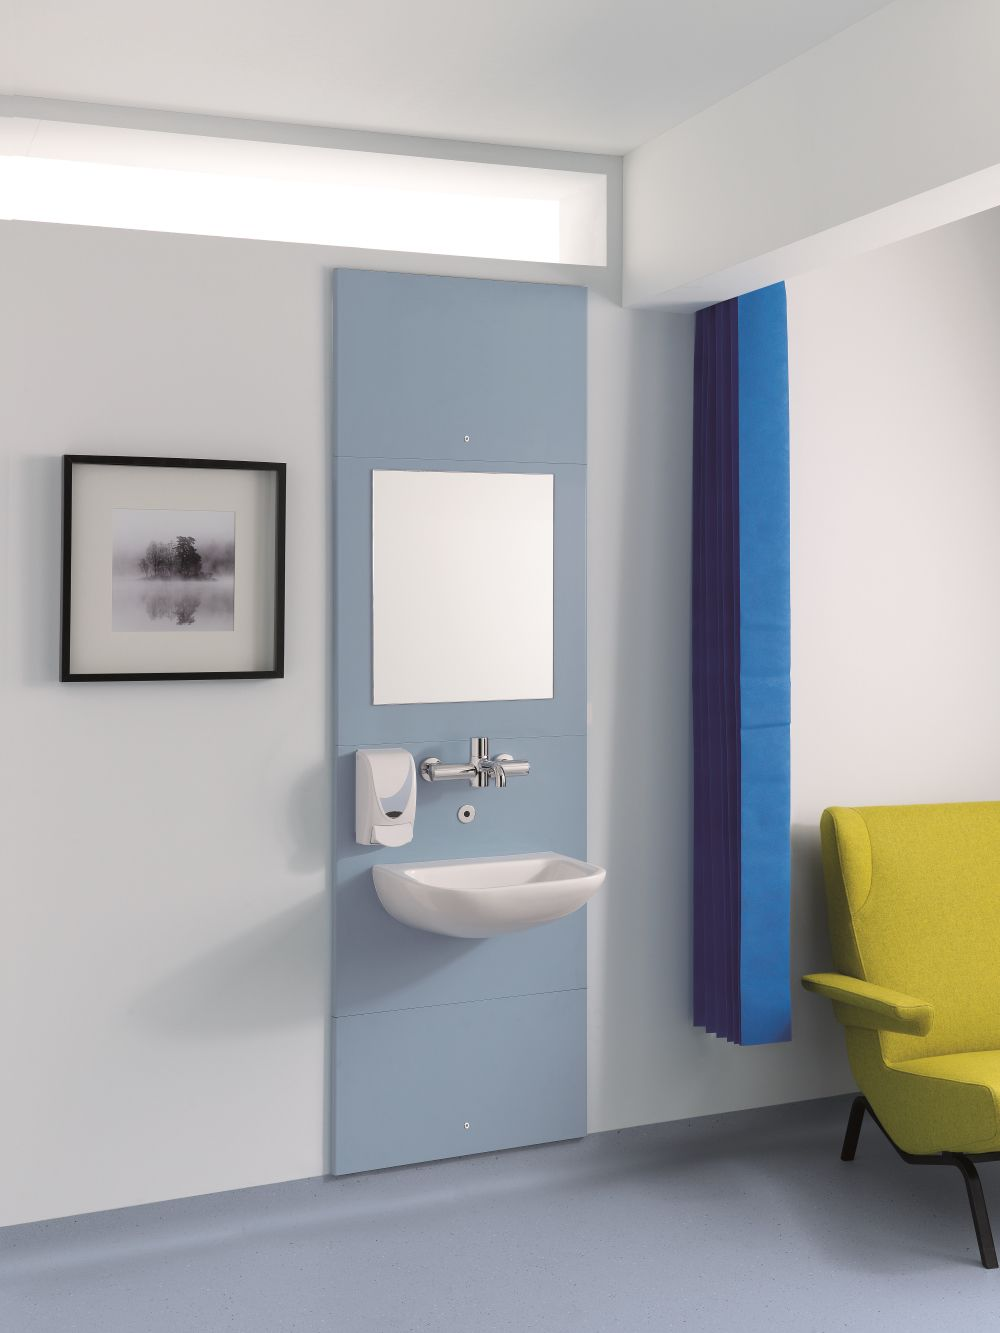 decorative panel / metal / bathroom / wall-mounted - recessed unit